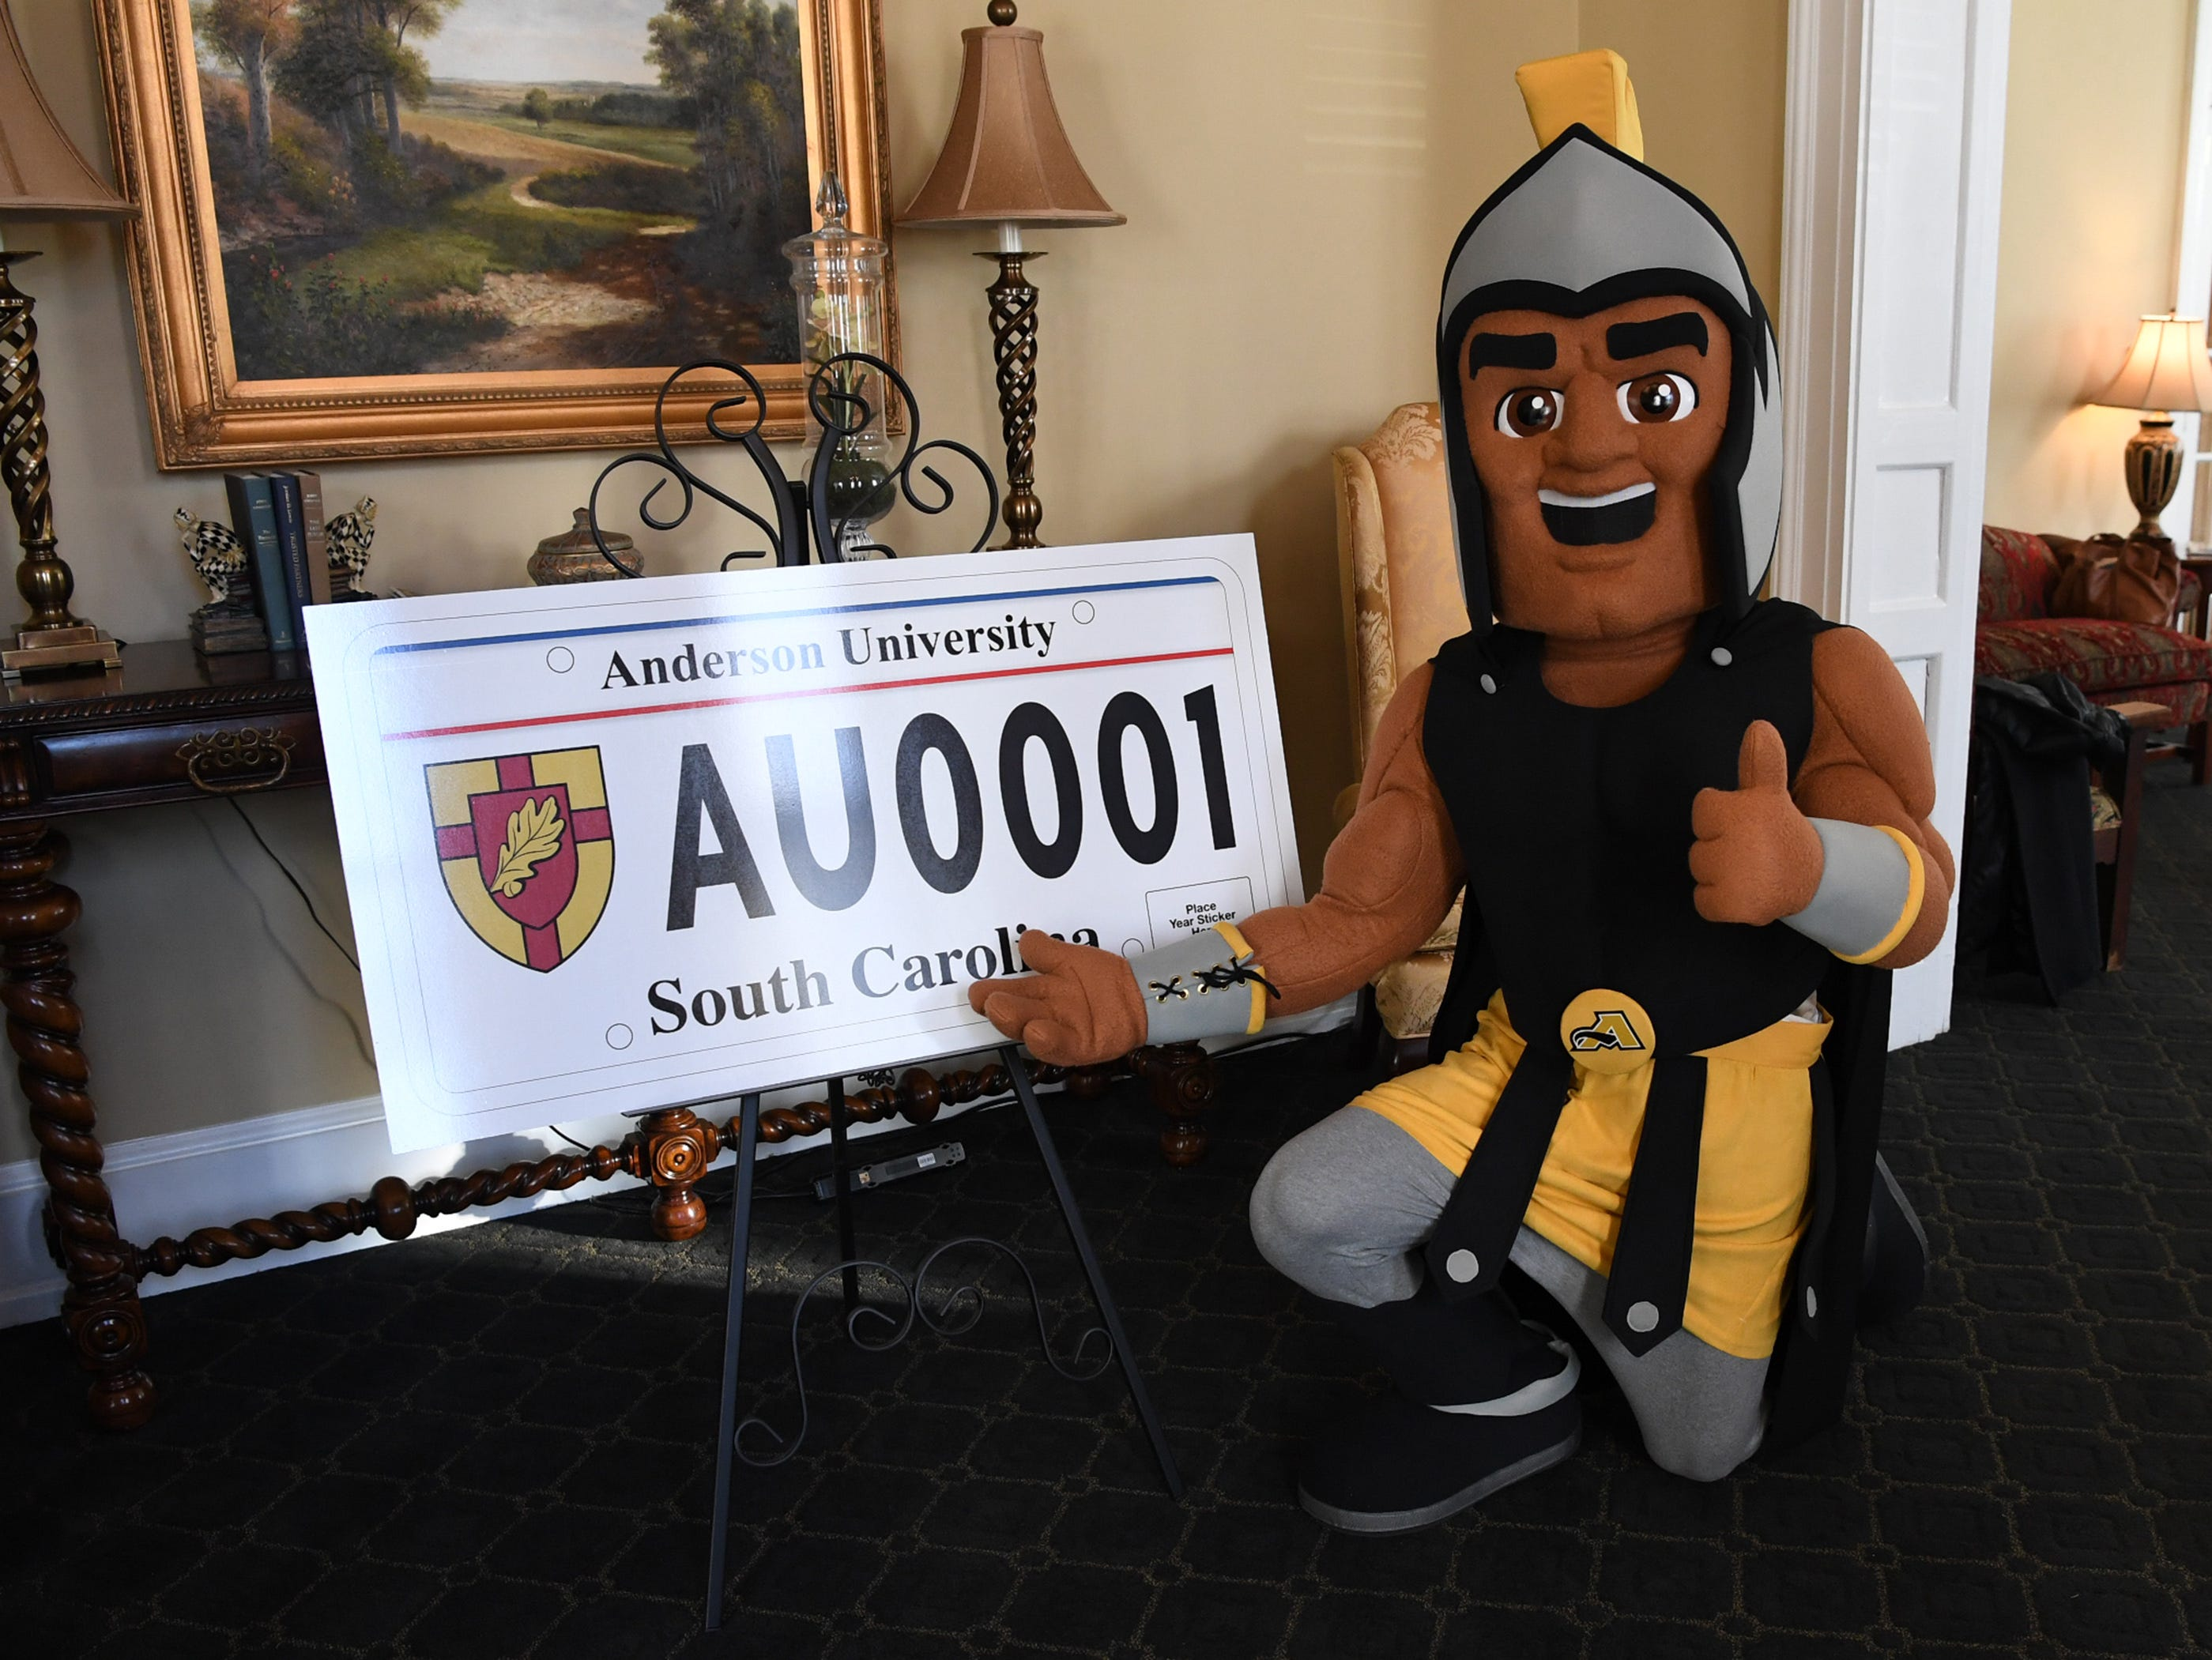 Troy the Trojans mascot of Anderson University stands for a photo before showing other officials a new personalized license plate during a press conference at the campus administration building in Anderson Friday morning. The University plate, along with Clemson University and the University of South Carolina, are the only college or university plates available to personalize, said Perkins-Brown. The Anderson University plates can be applied for starting Monday, January 28, 2019 in person, not online, for $100 and an added fee if personalizing.